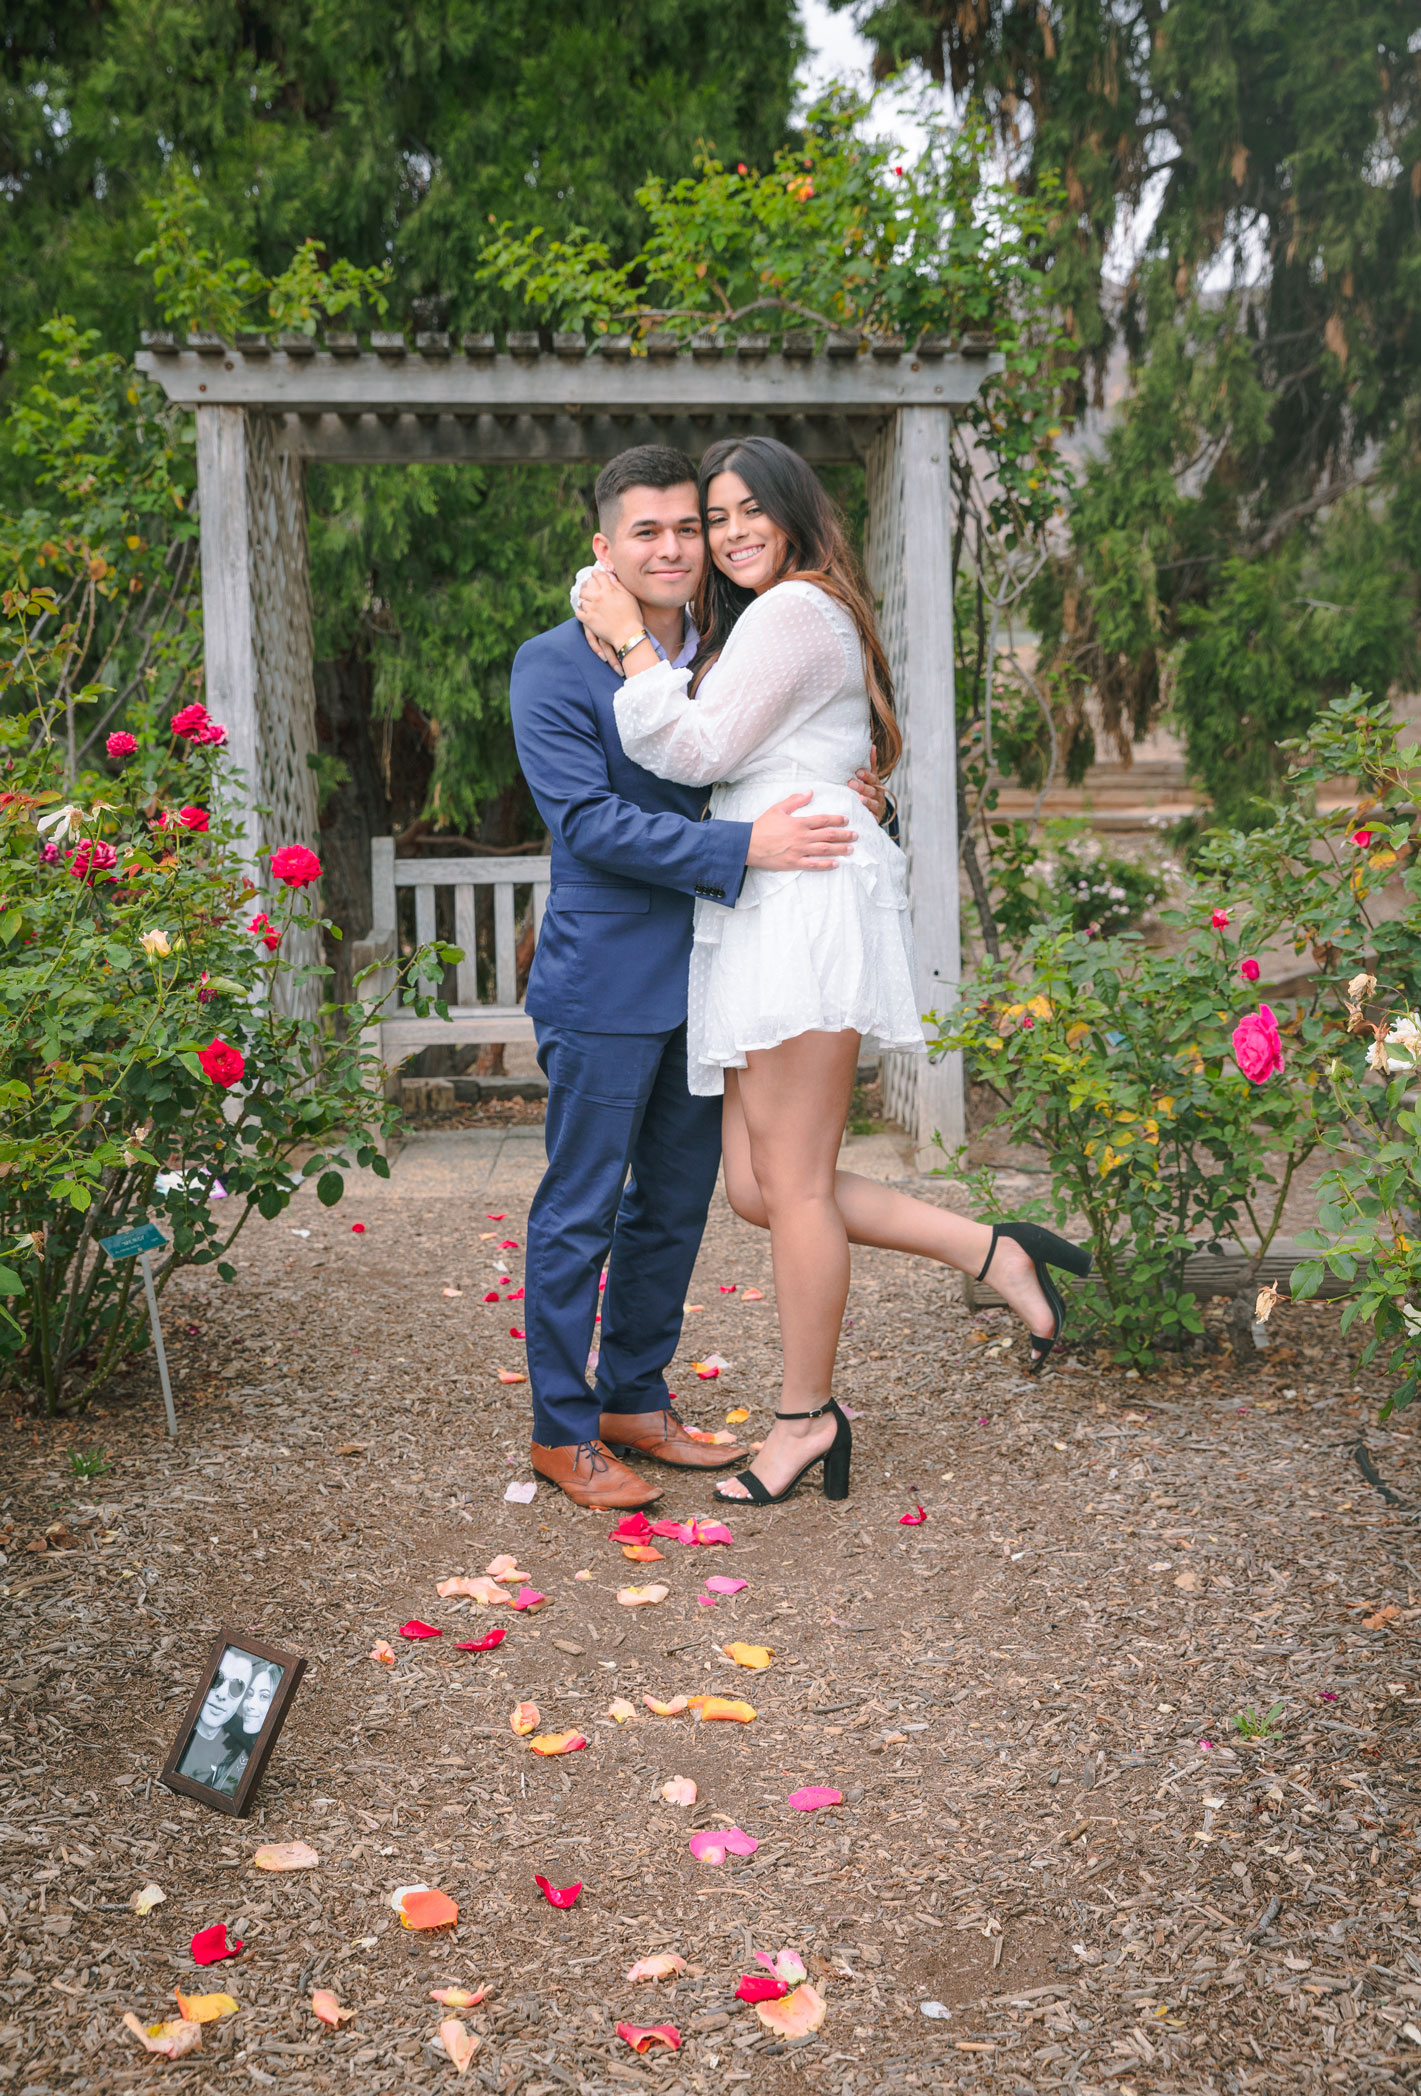 MYAH & MANNY - Proposal in the UCR Gardens